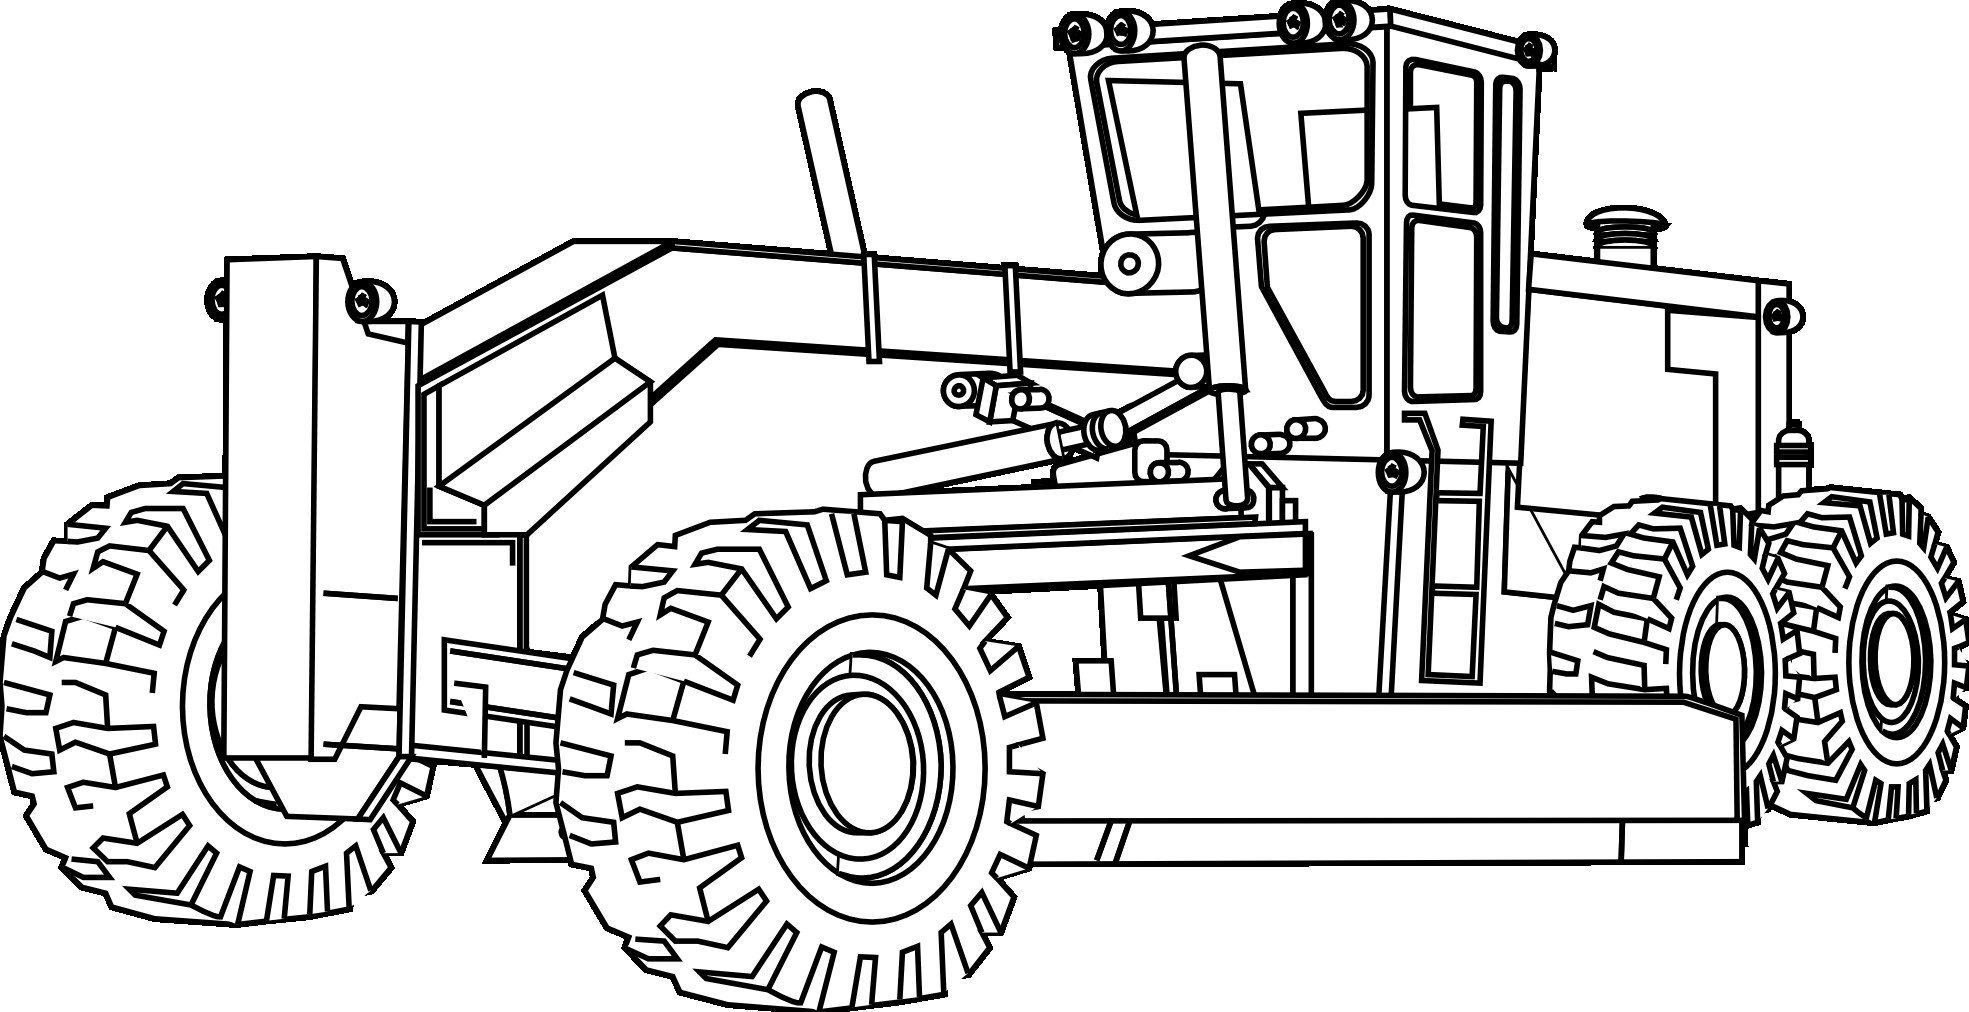 Free Coloring Sheets Construction Trucks  Printable of Construction Equipment